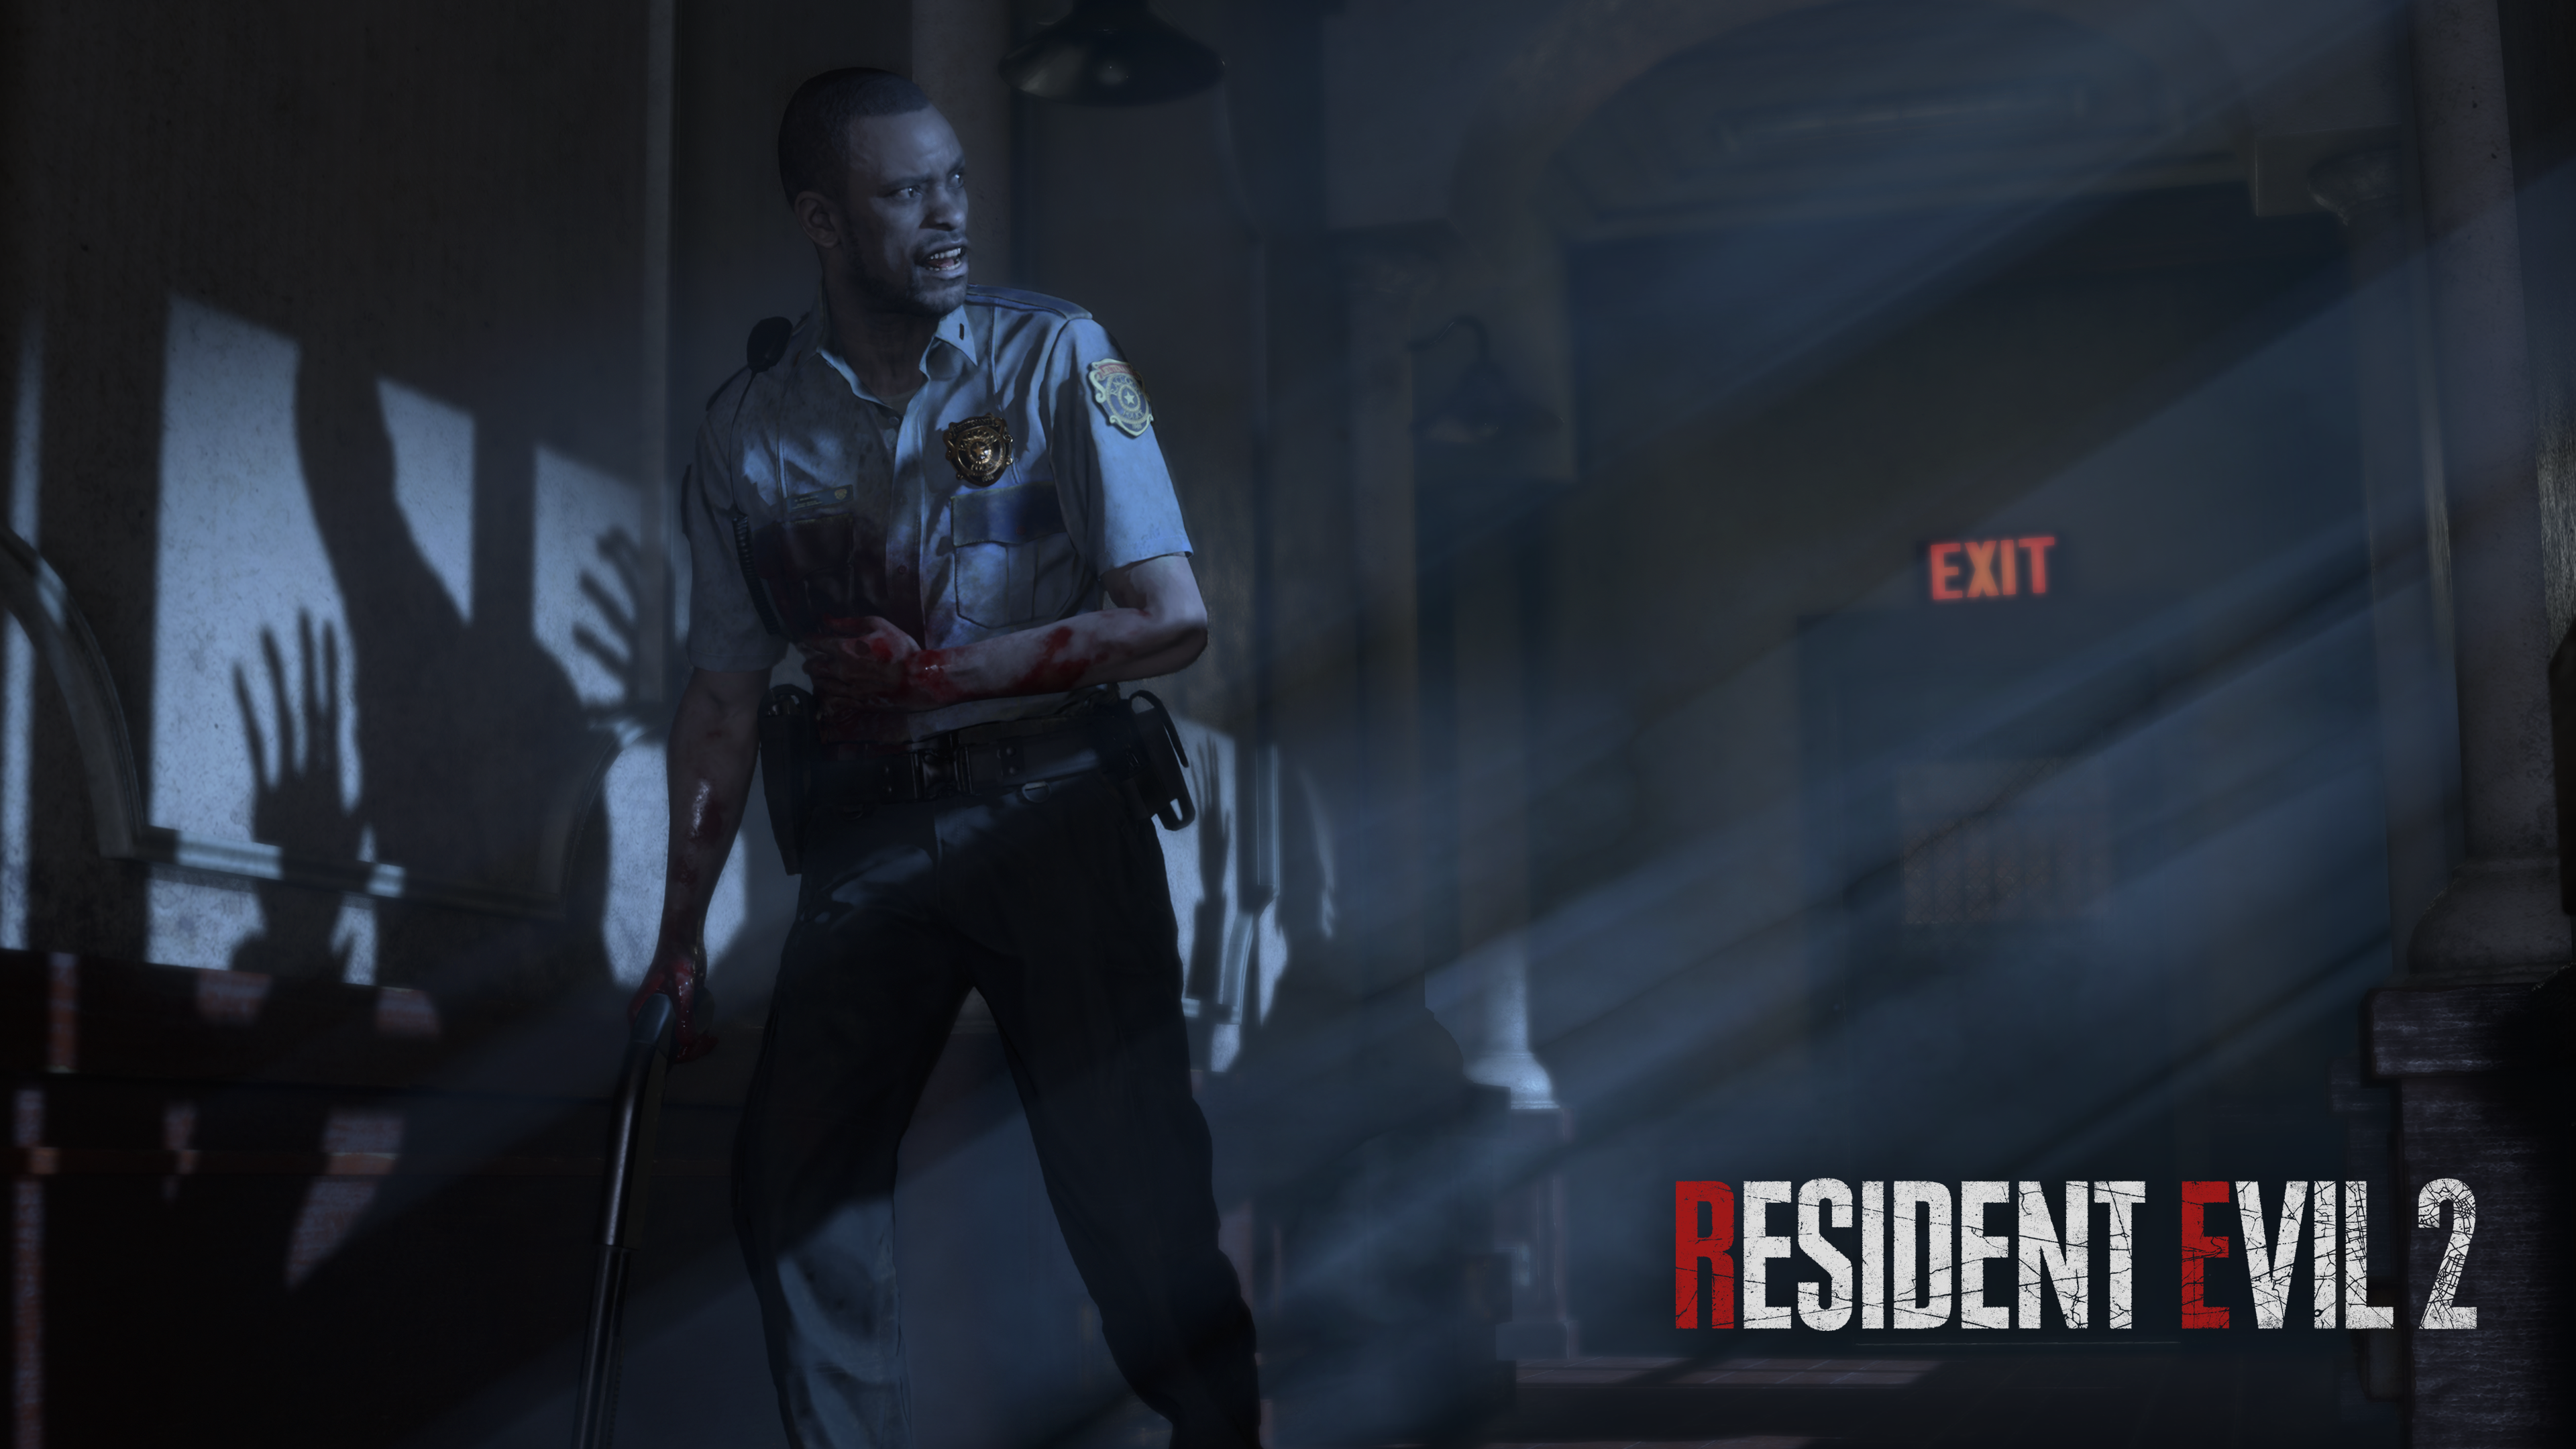 Resident Evil 2 Wallpaper 1080p Posted By Ryan Walker